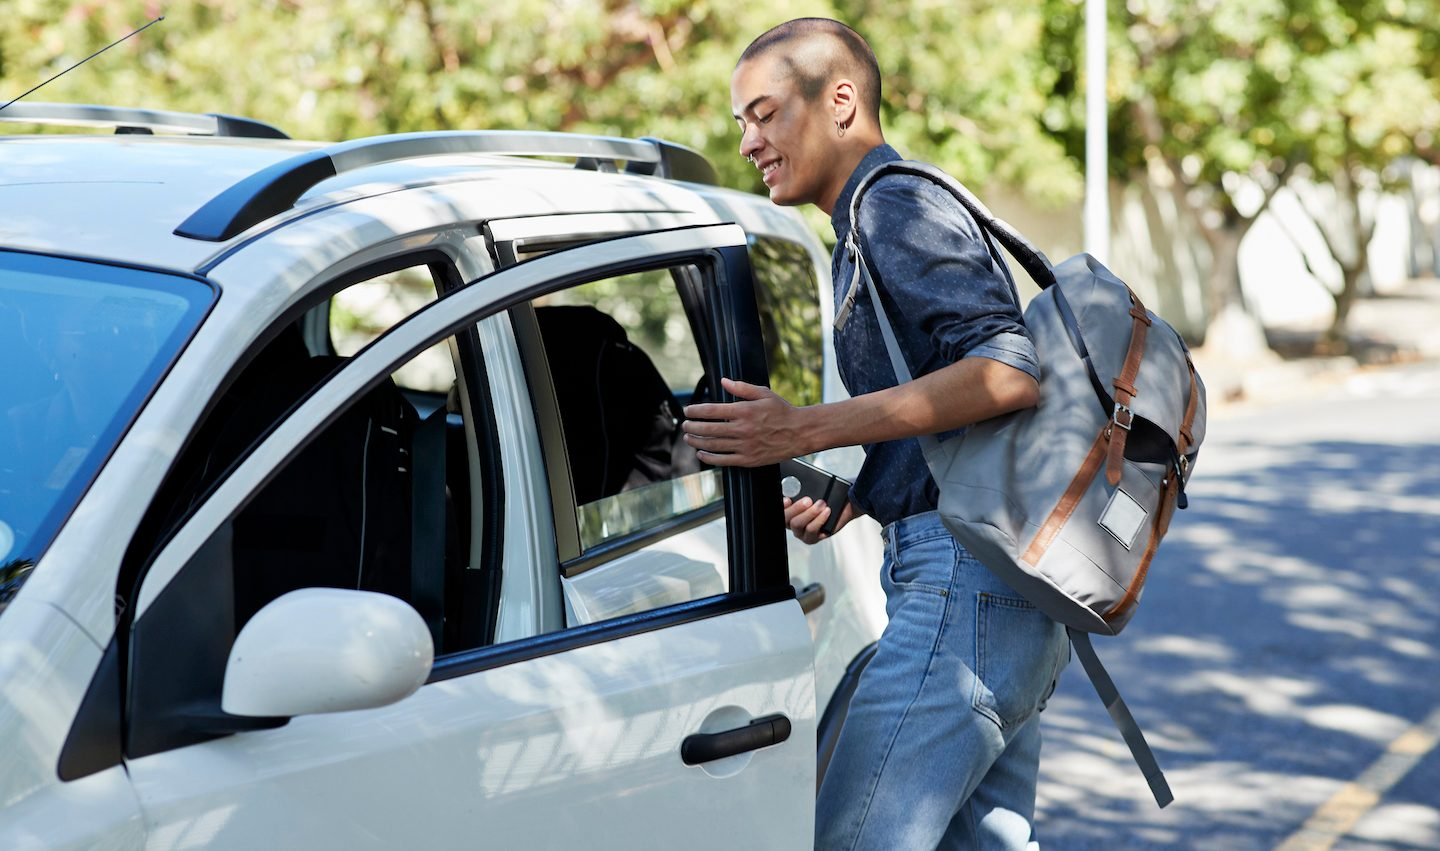 man getting into his new car with same insurance policy